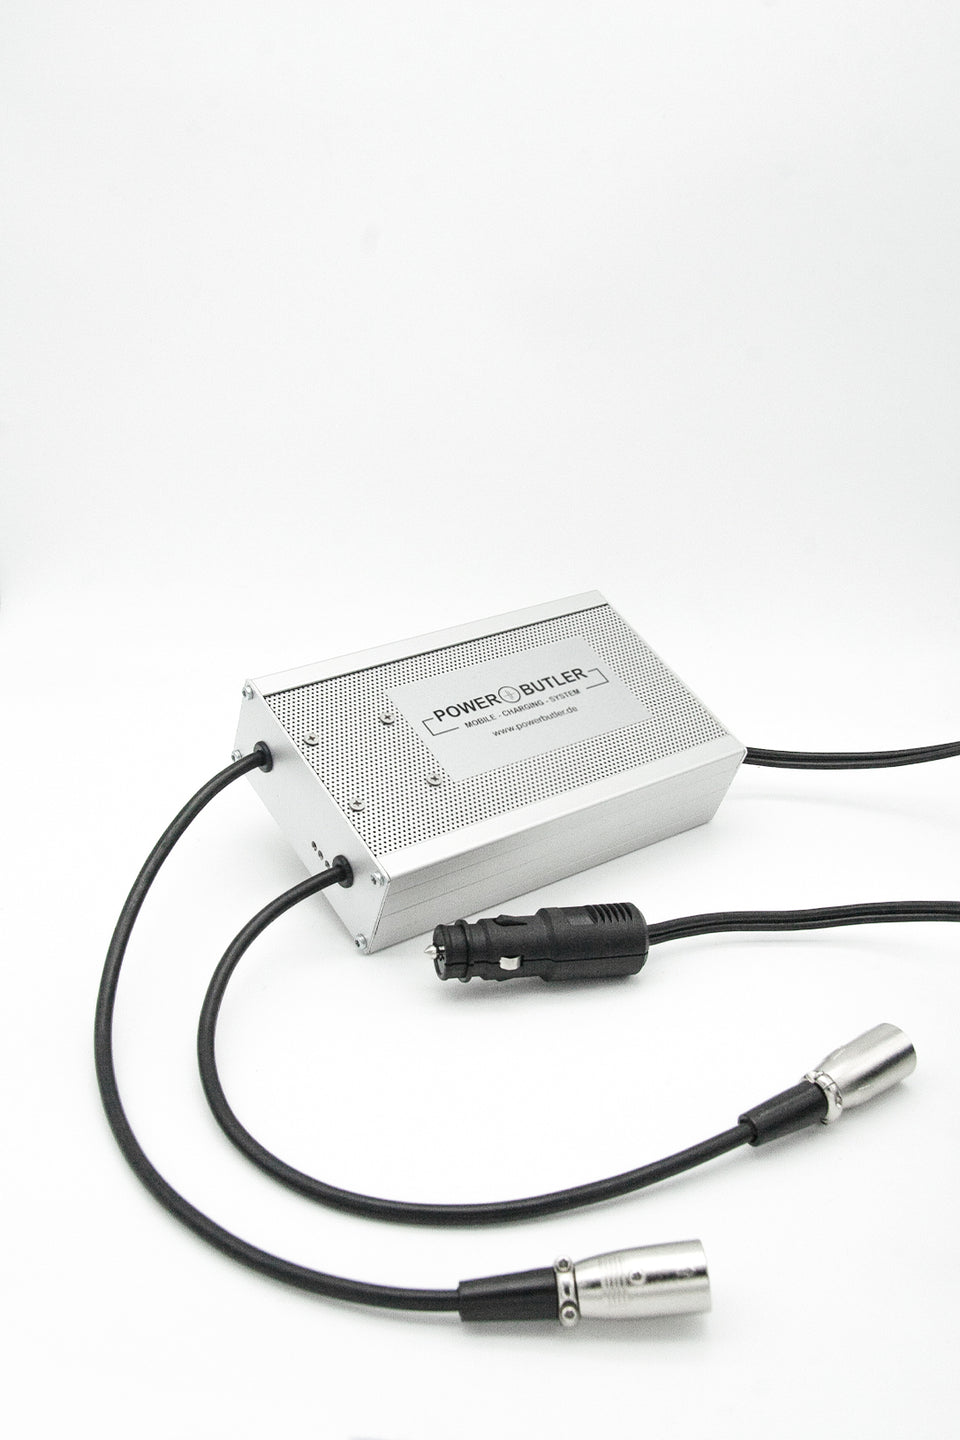 Powerbutler Multi Impulse/Hohlstecker 36V